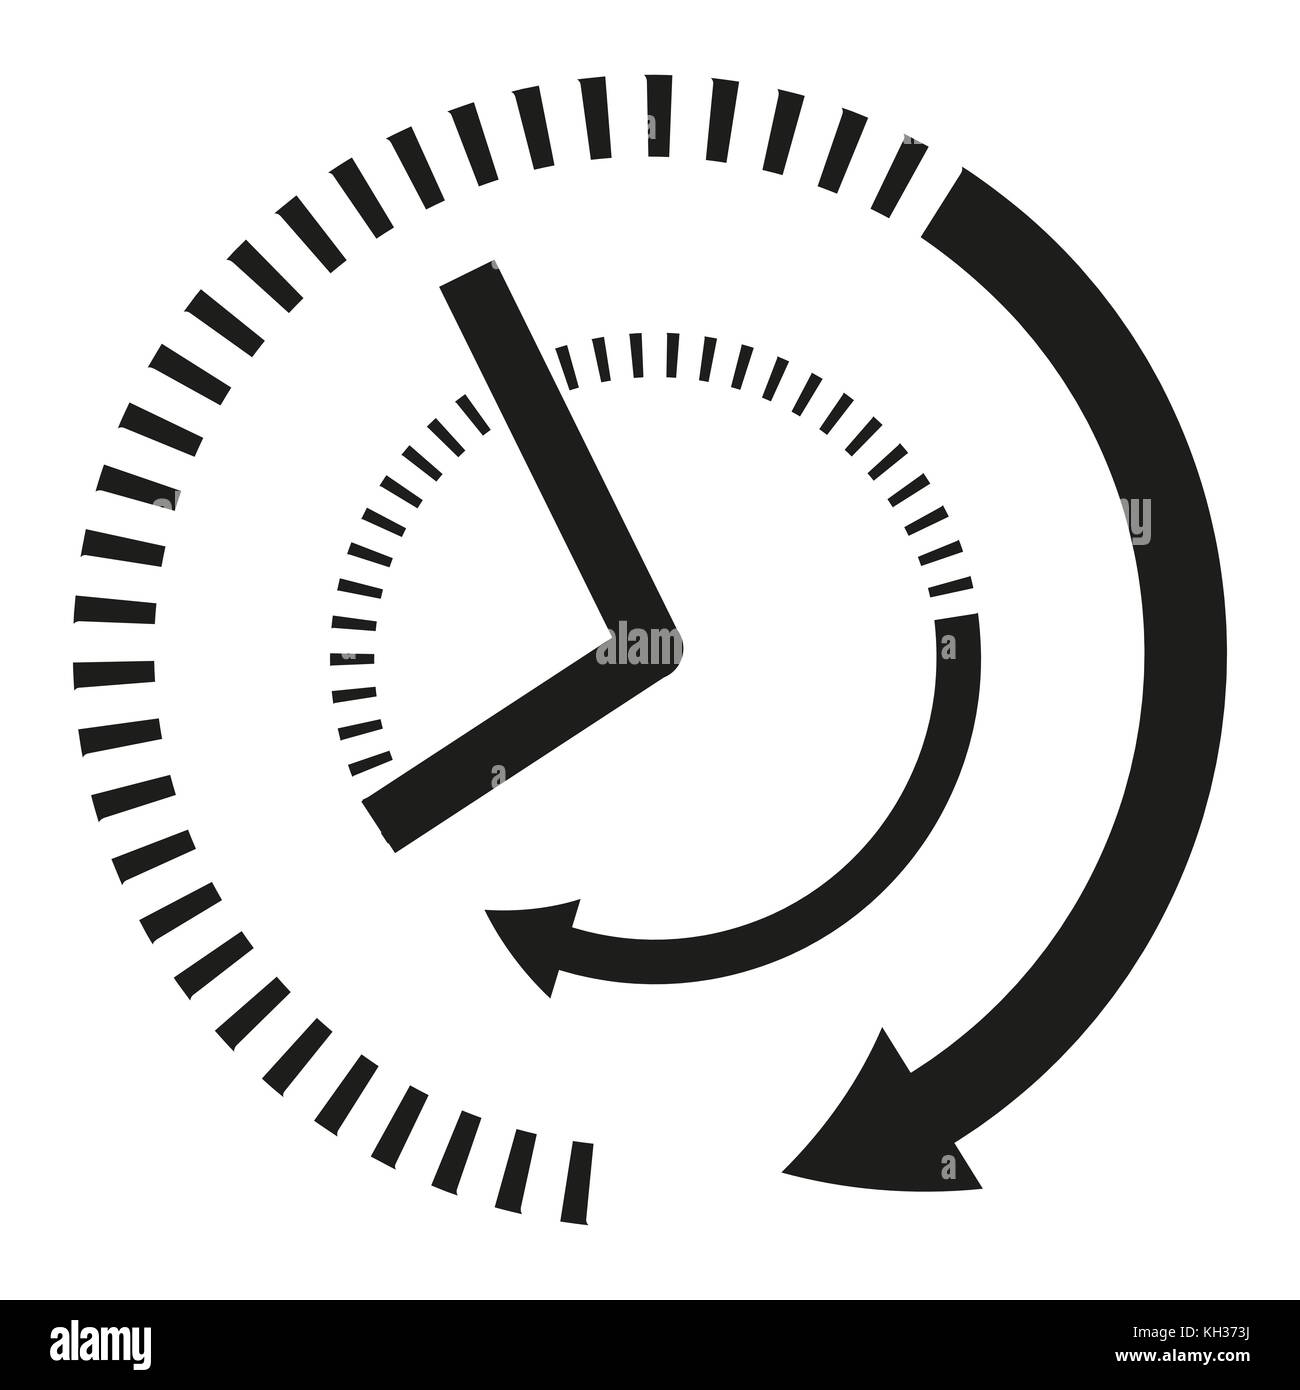 Icon clock hands in black and white - Stock Image